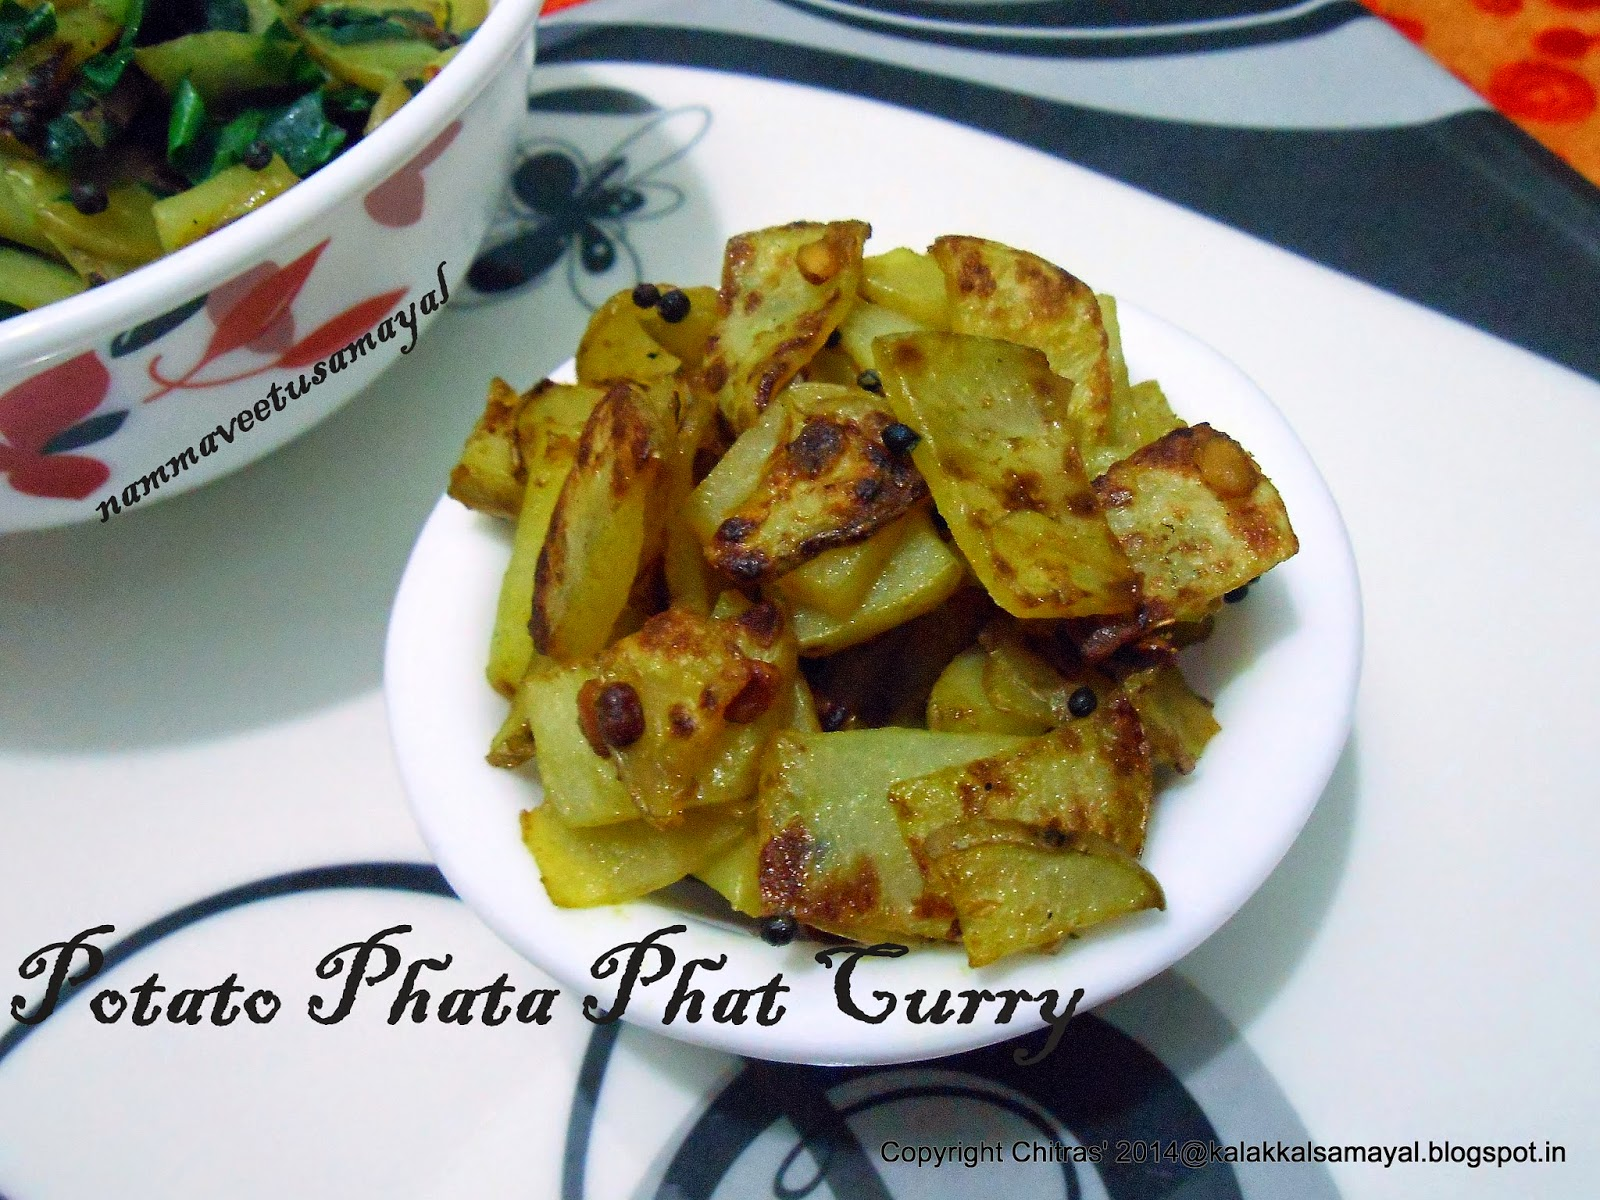 Potato Phata phat Curry